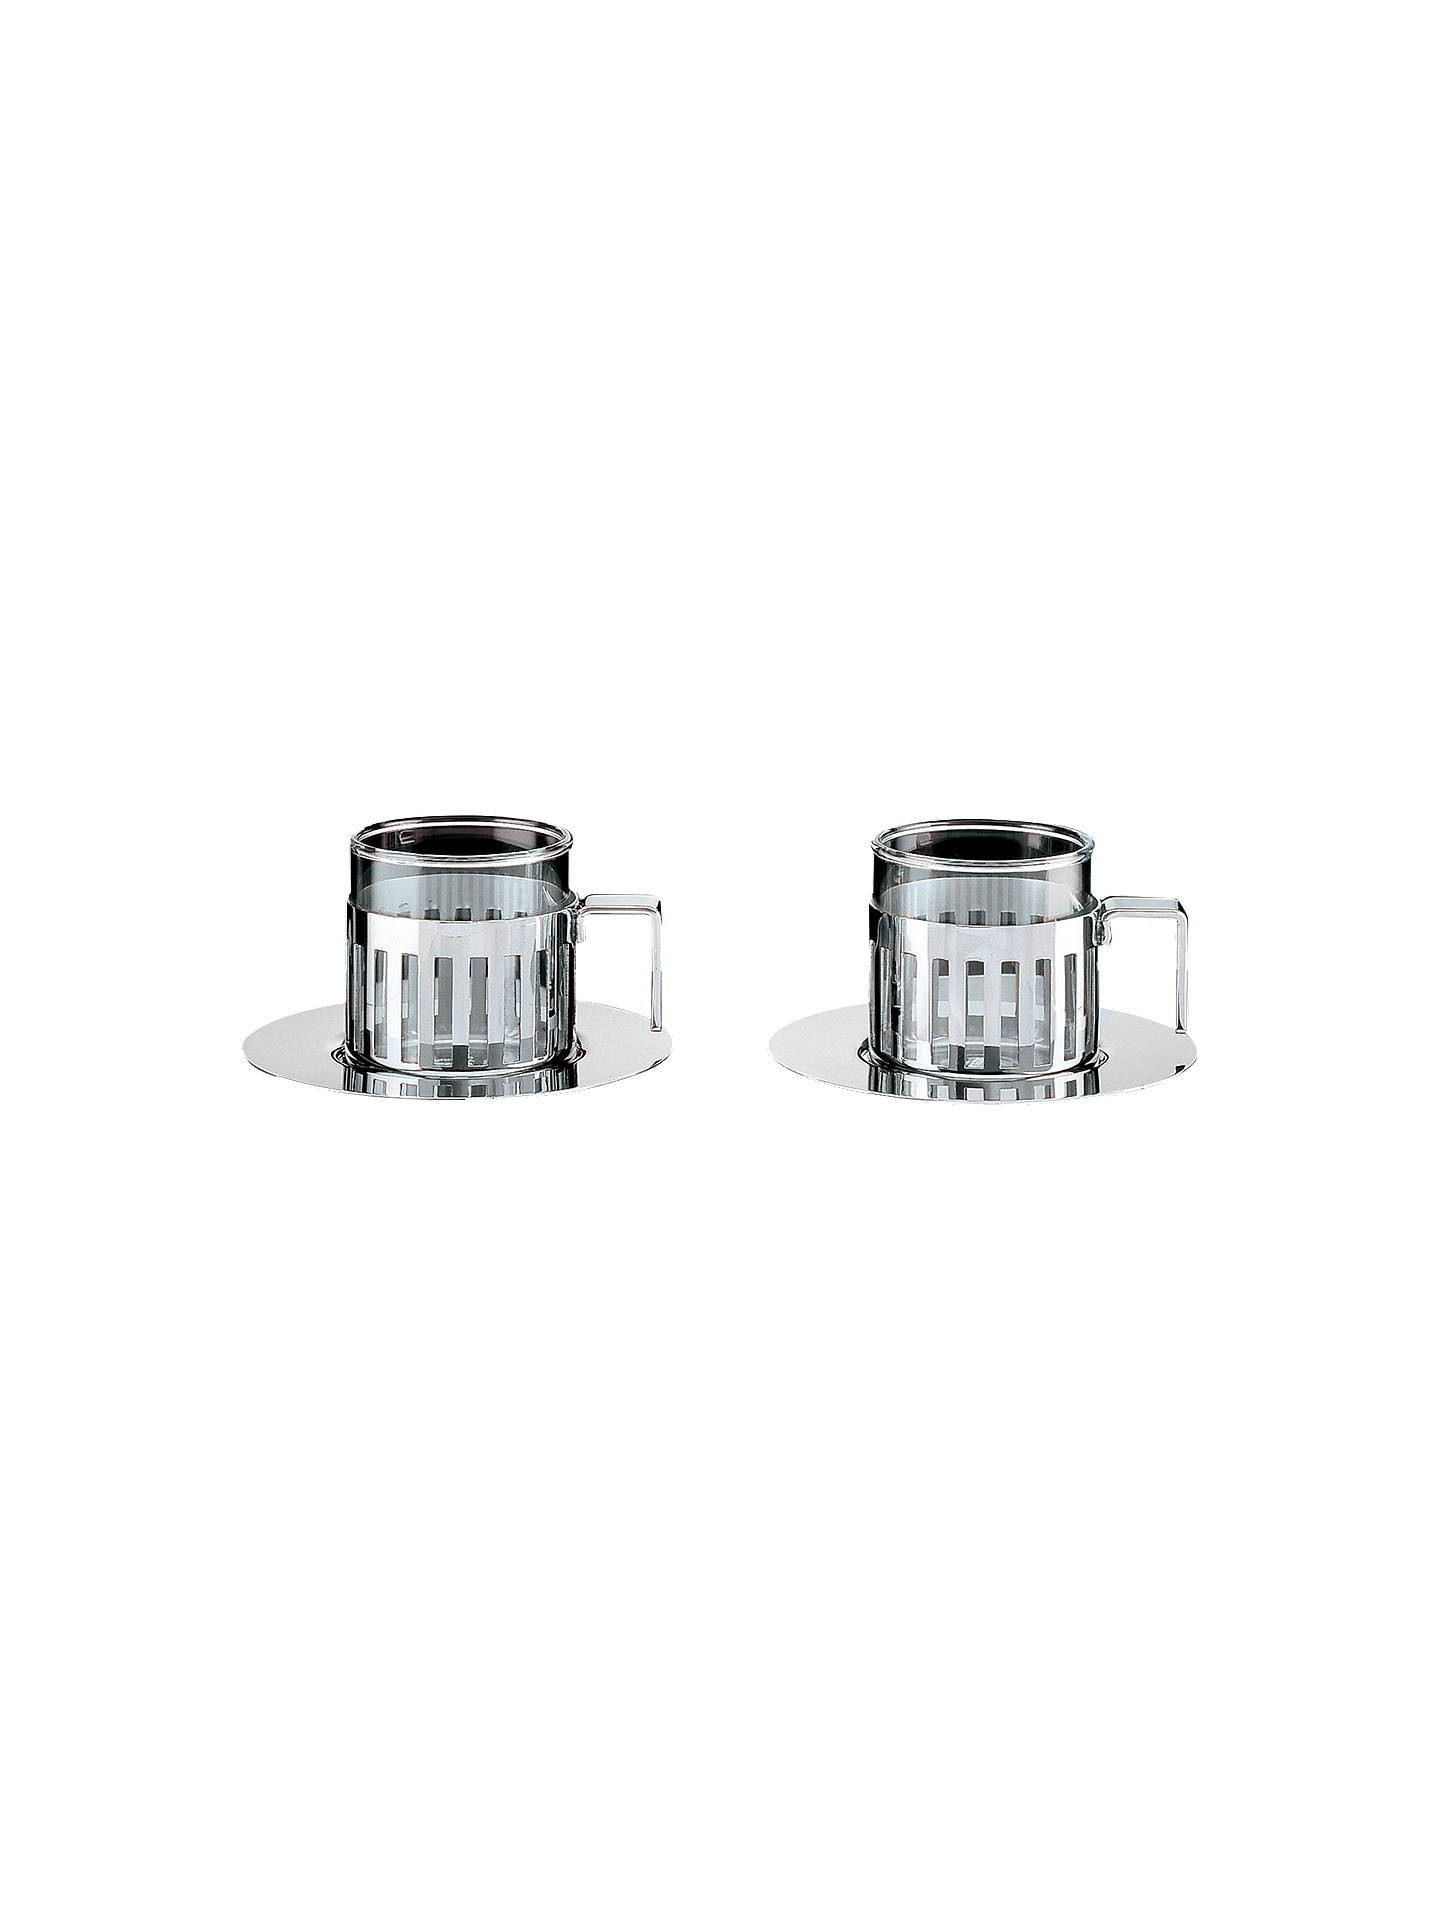 Buy Alessi Espresso Cups, Set of 2 Online at johnlewis.com